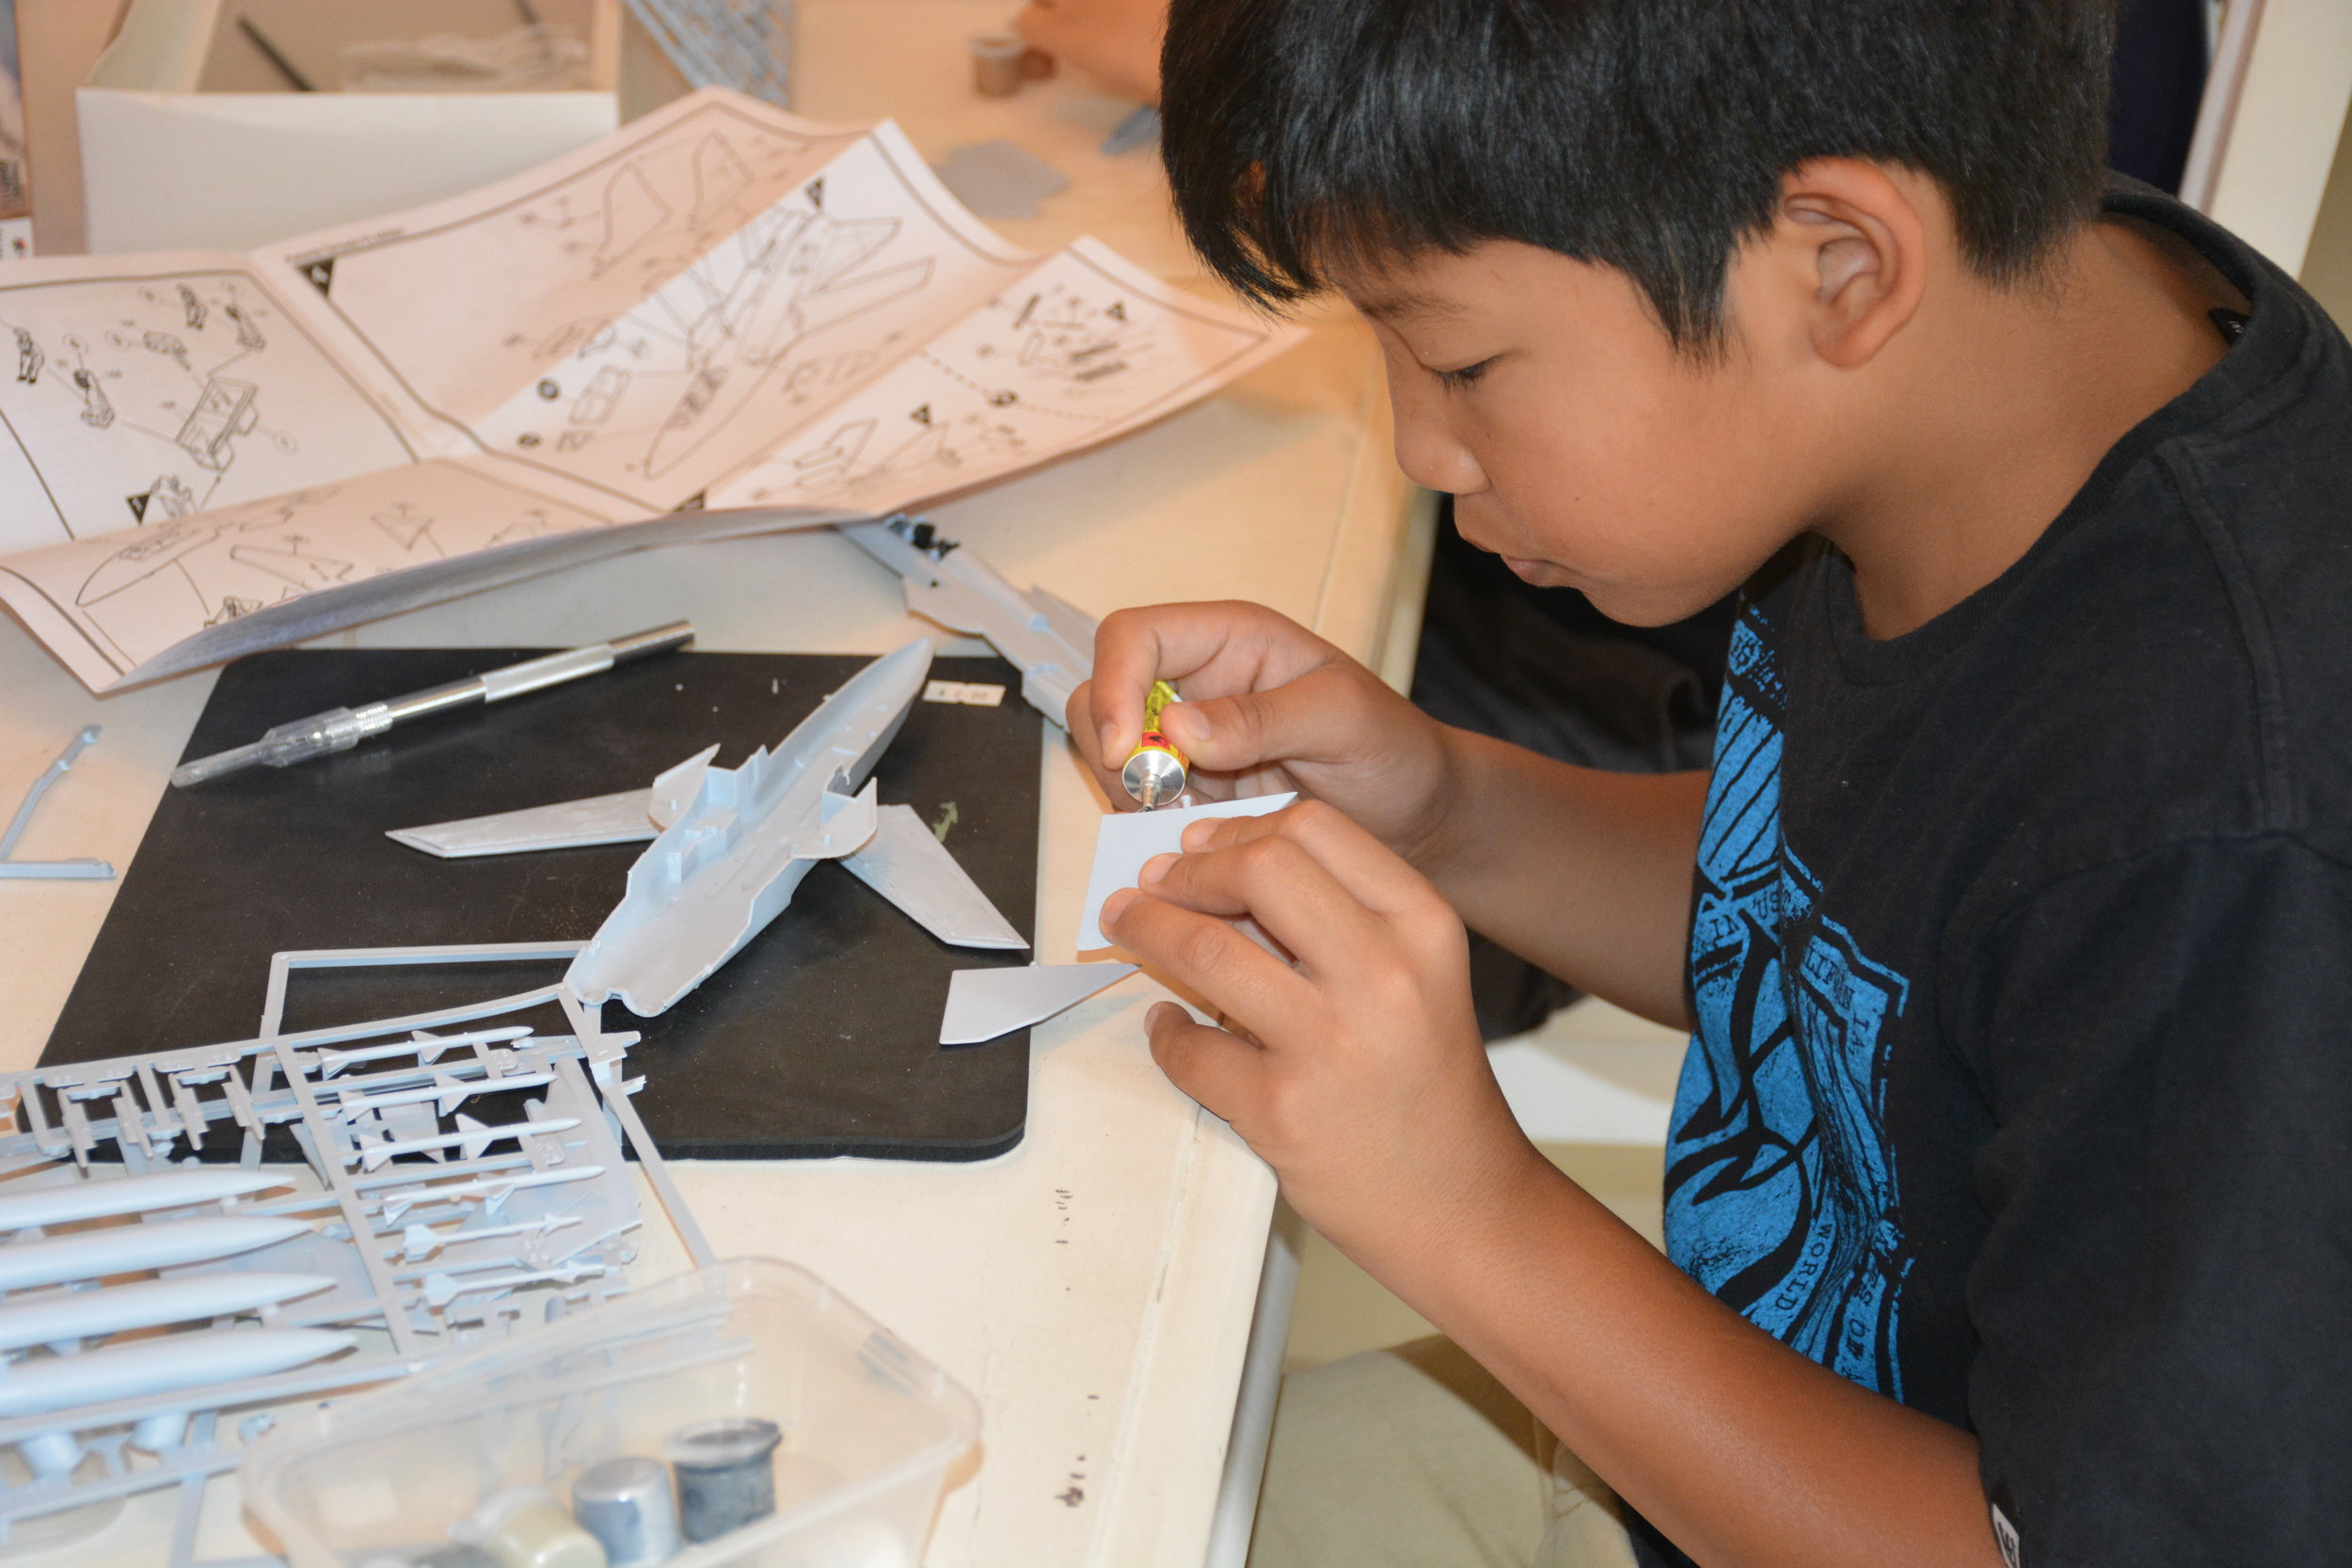 Learning how to put together a plastic model kit. -